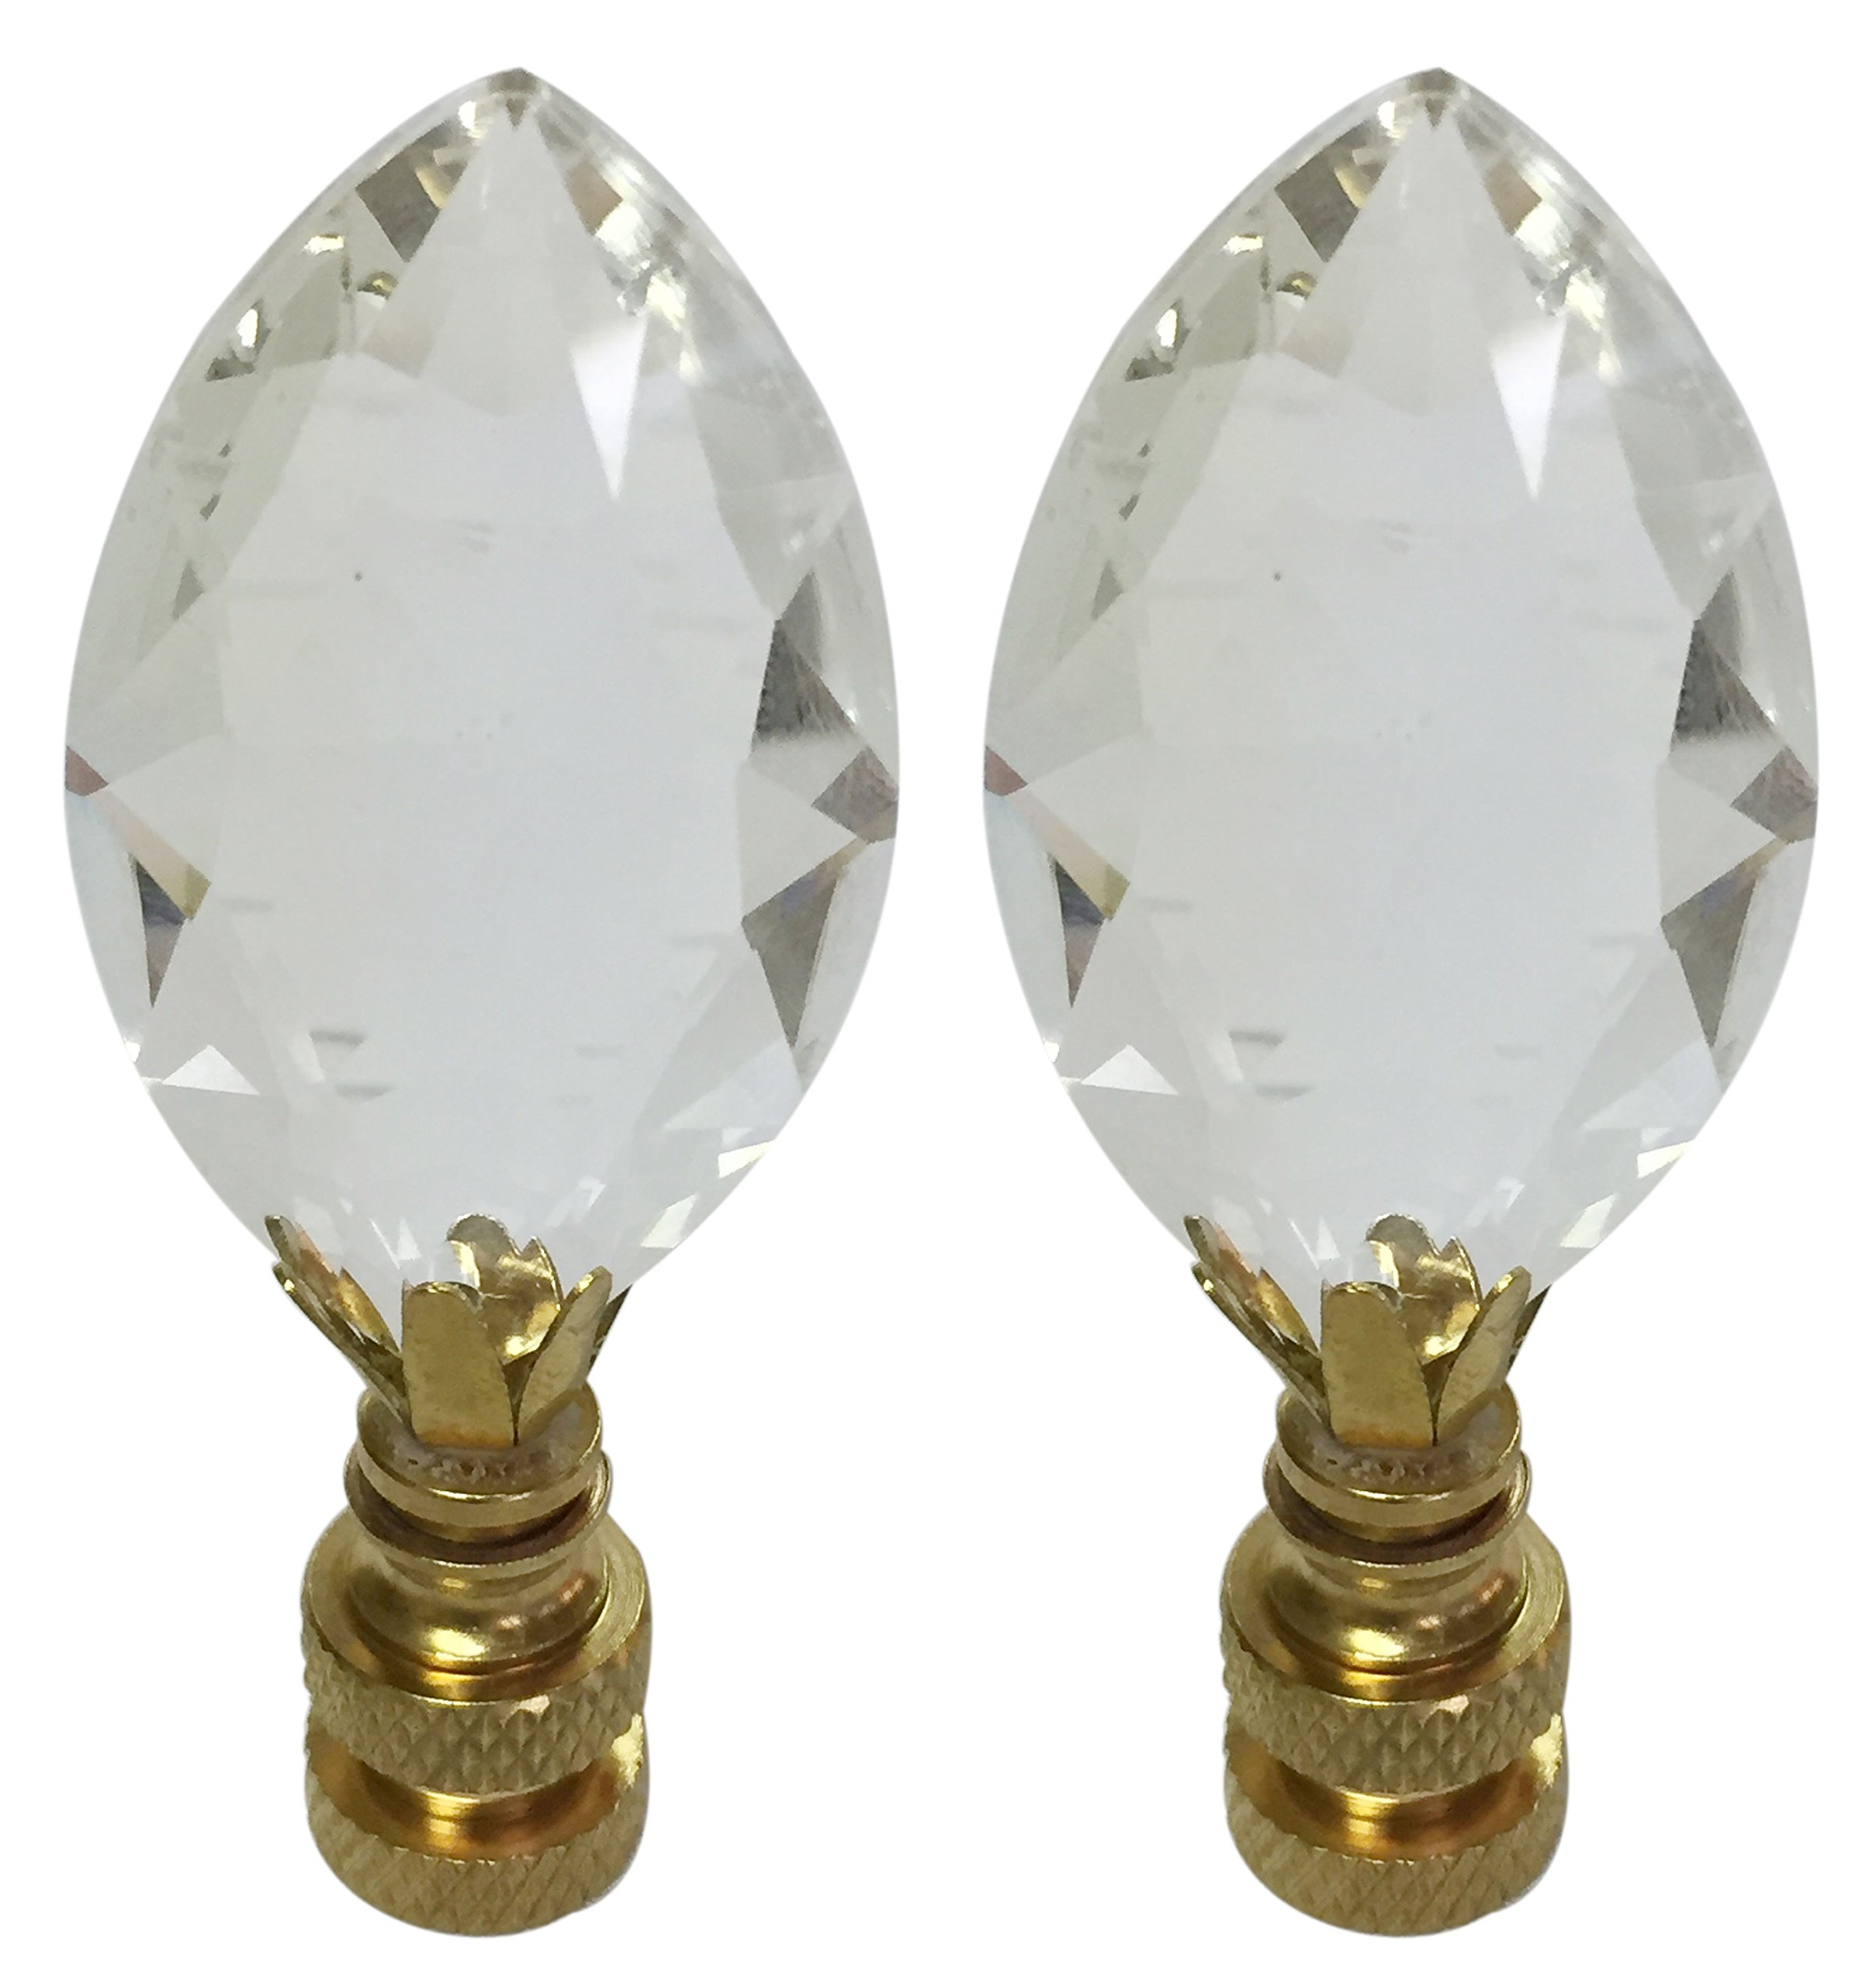 Royal Designs CCF2010-PB-2 Pear Shaped Clear K9 Crystal Finial for Lamp Shade with Polished Brass Base Set of 2, 2 Piece